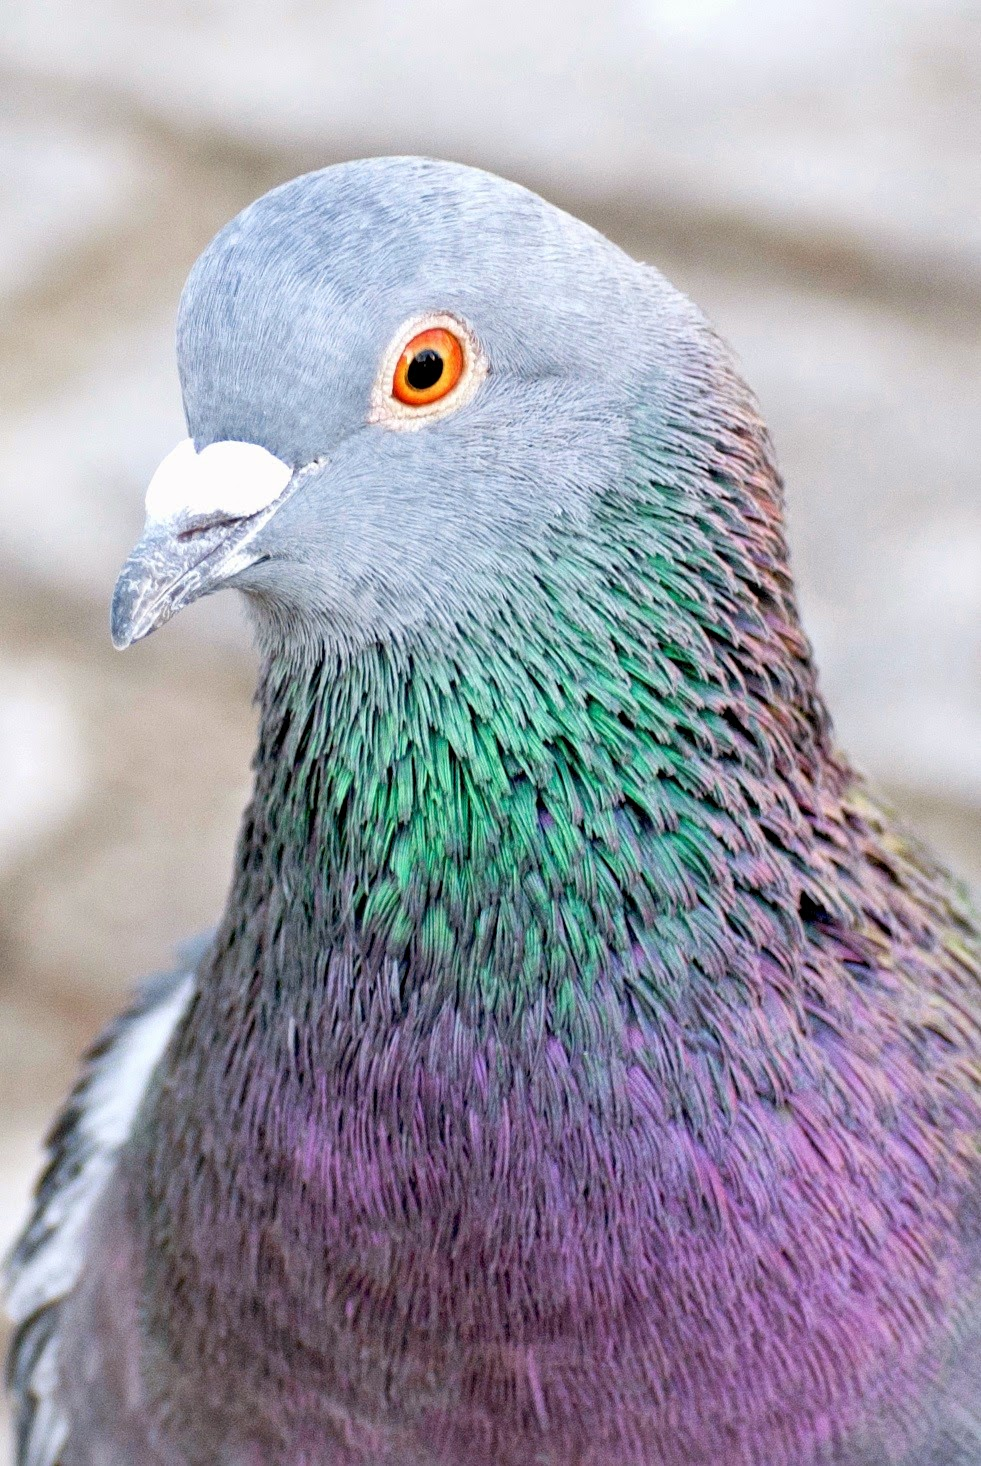 essay on pigeons by richard kell Pigeons by richard kell if this is your first visit, be sure to check out the faq by clicking the link above you may have to register before you can post: click the register link above to proceed.